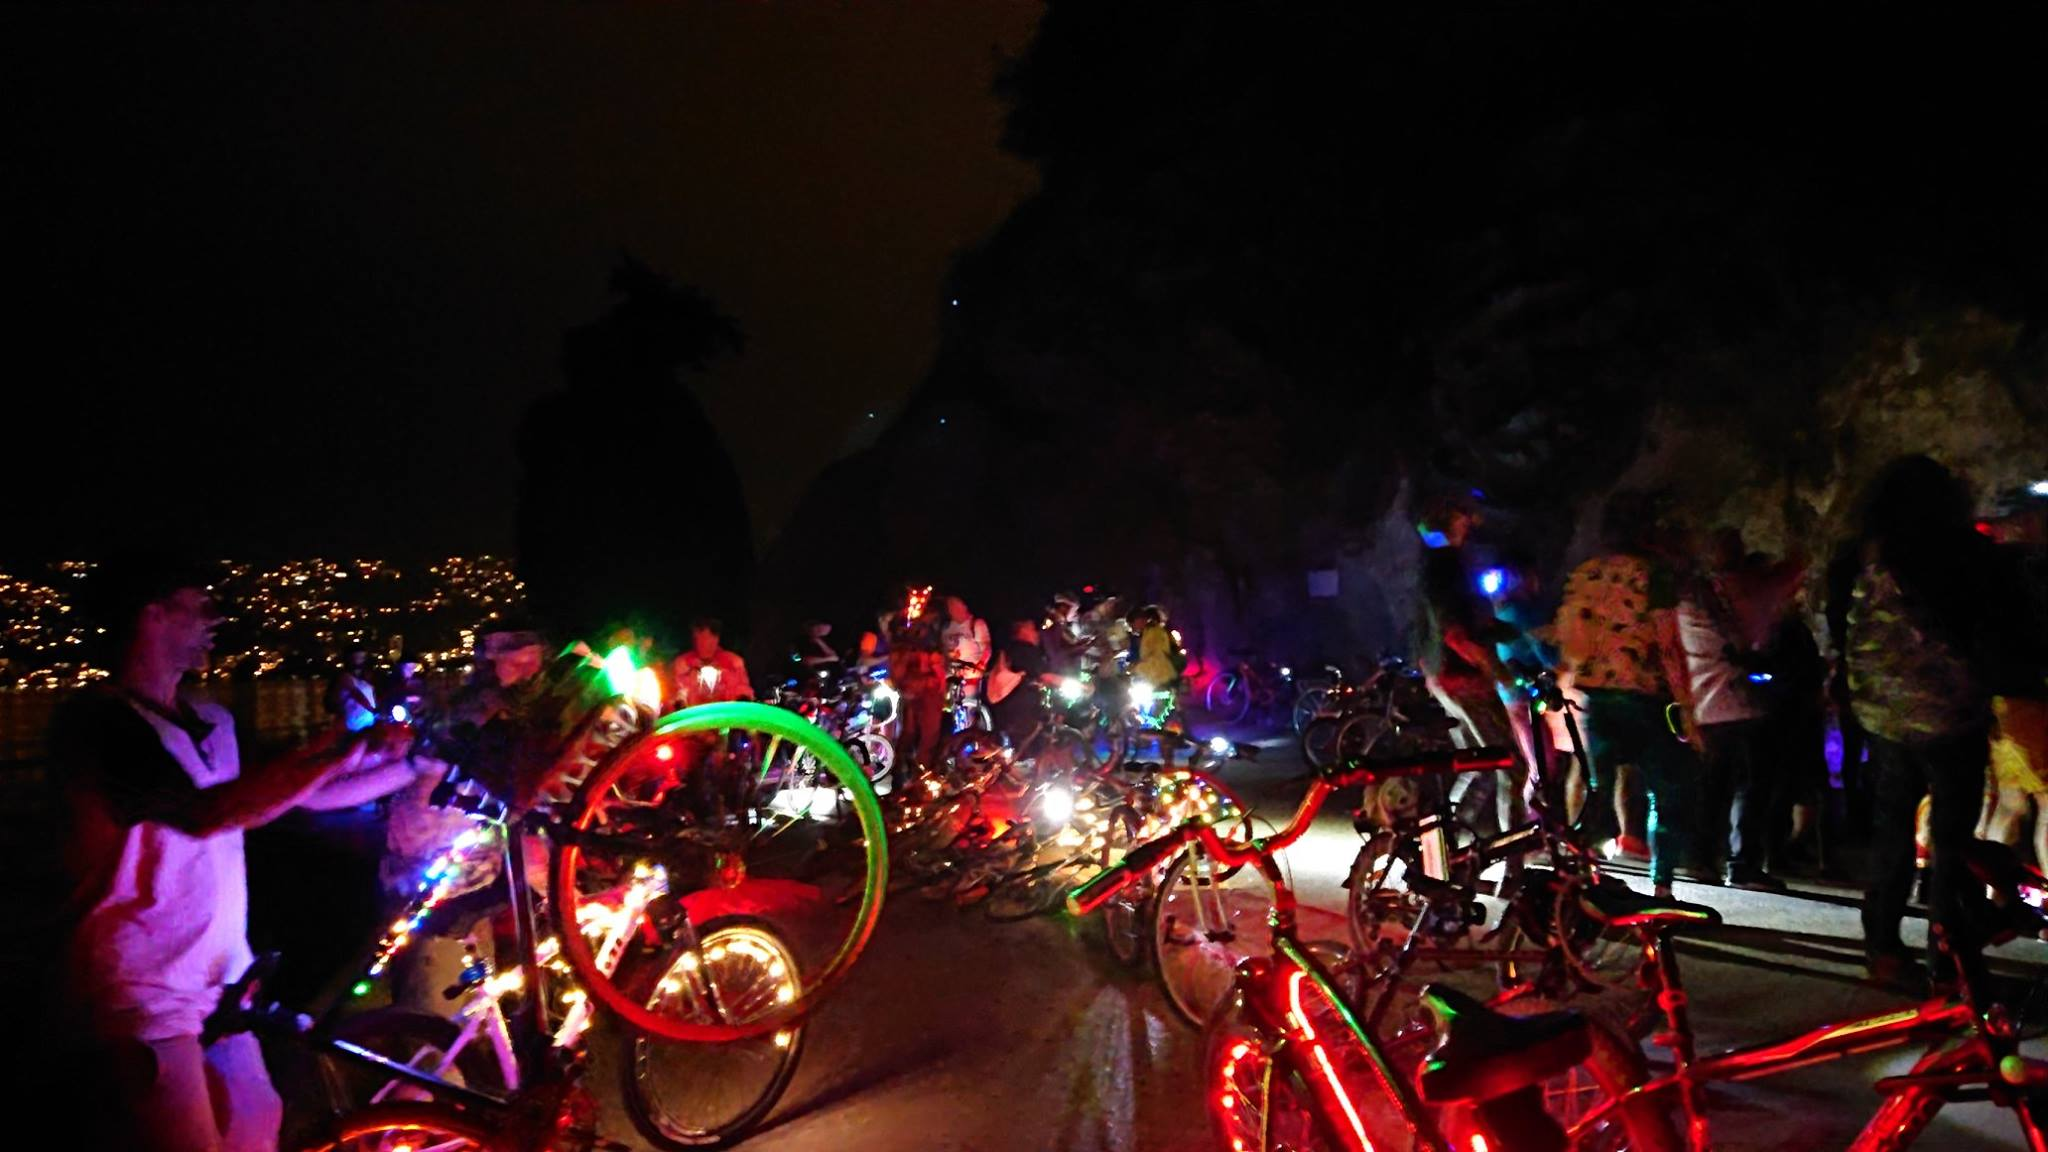 Summer Bike Rave